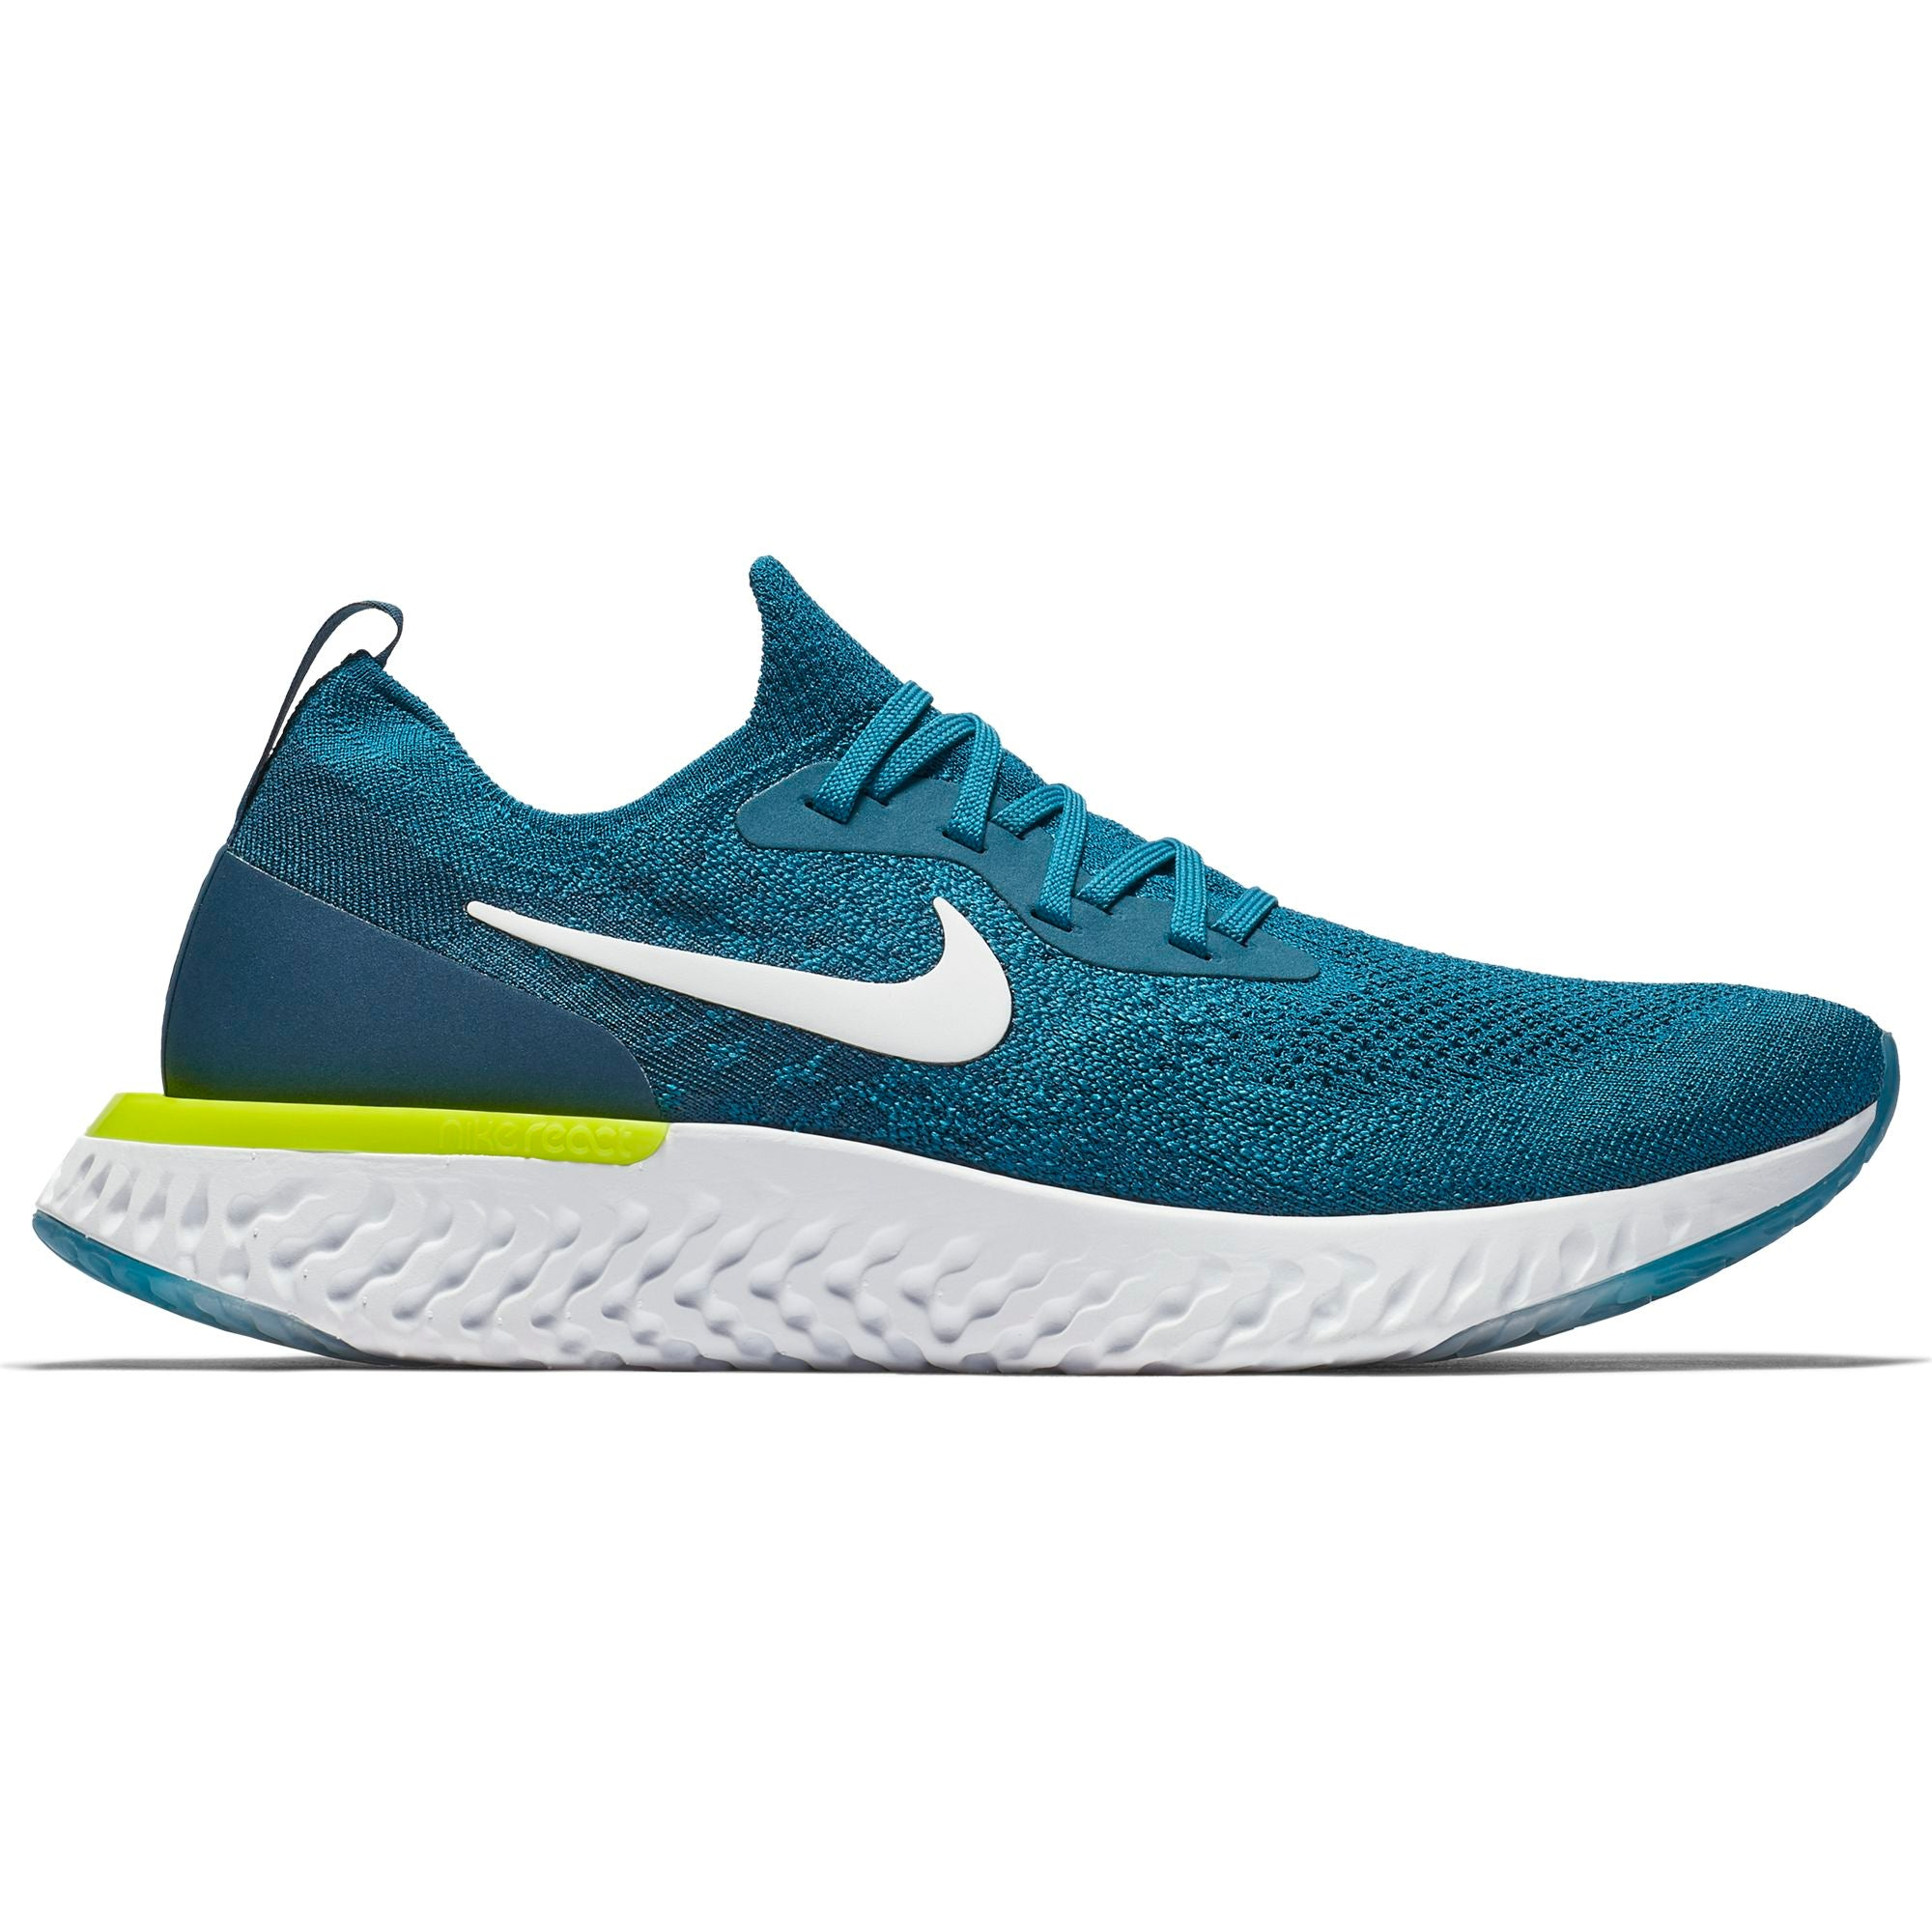 c801e91af0127 Men s Epic React Flyknit Running Shoe - Green Abyss White Blue Force V –  Gazelle Sports